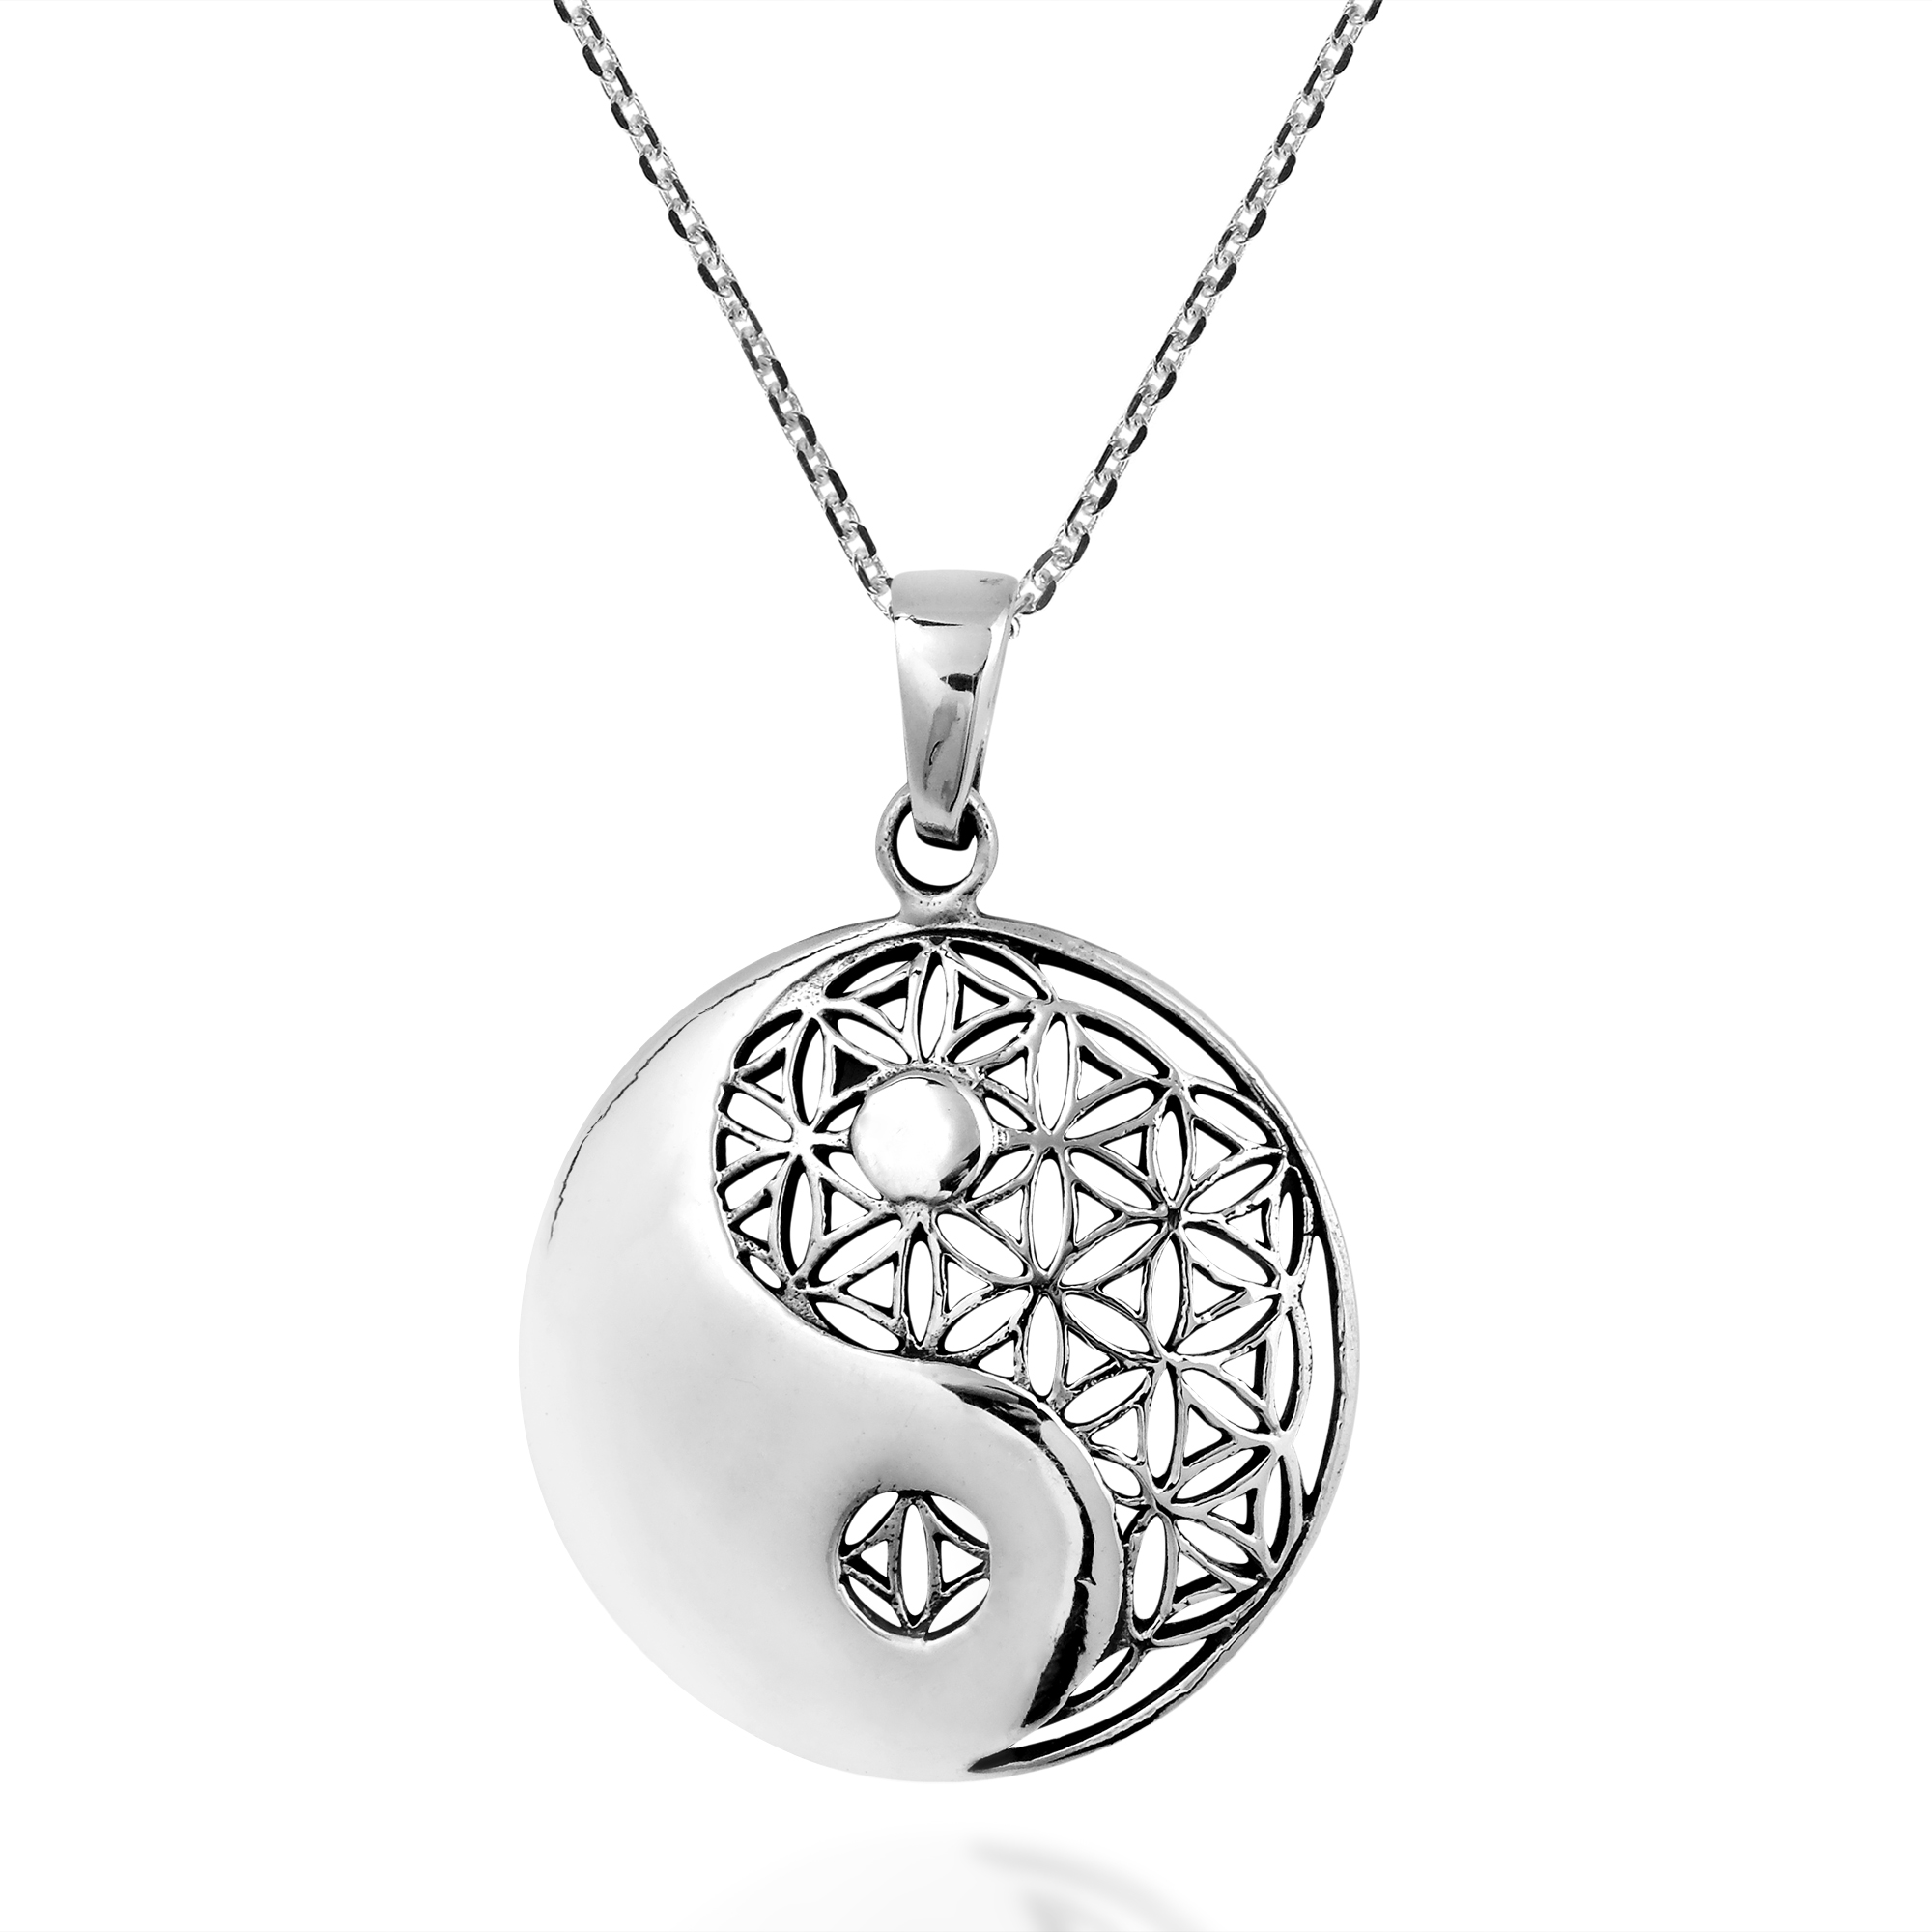 2000x2000 Yin Yang Balance Flower Of Life Sterling Silver Necklace